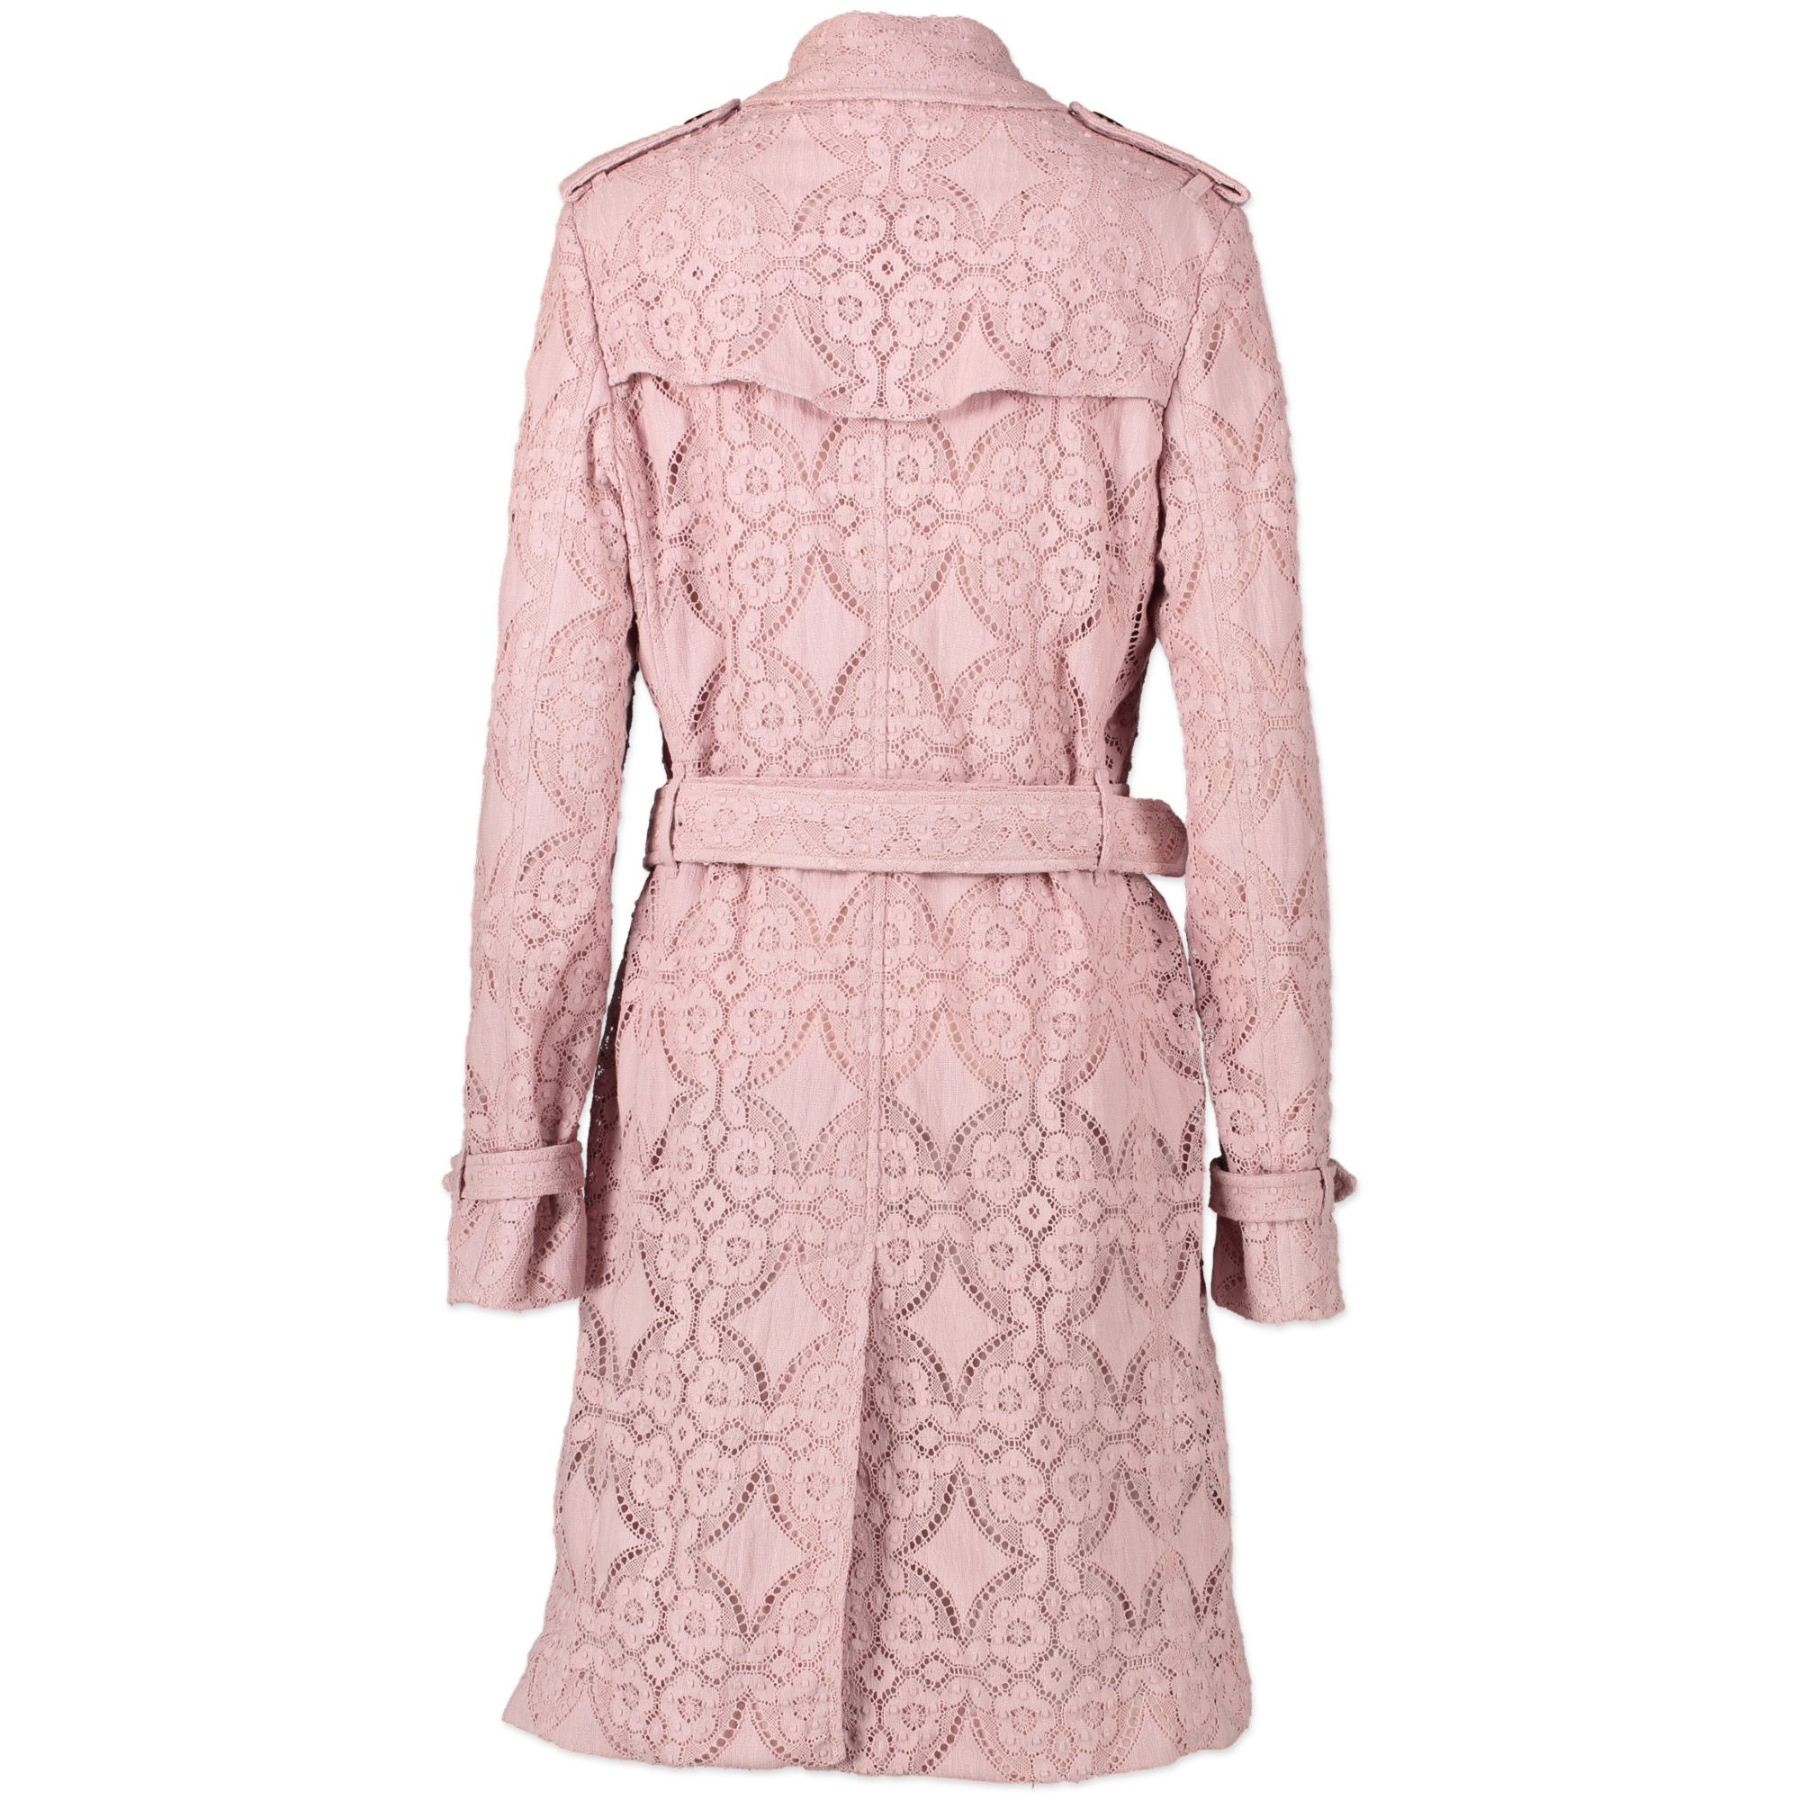 Authentic secondhand Burberry Pale Pink Macrame Lace Trench Coat - Size IT44 designer clothing accessories luxury vintage webshop high end brands